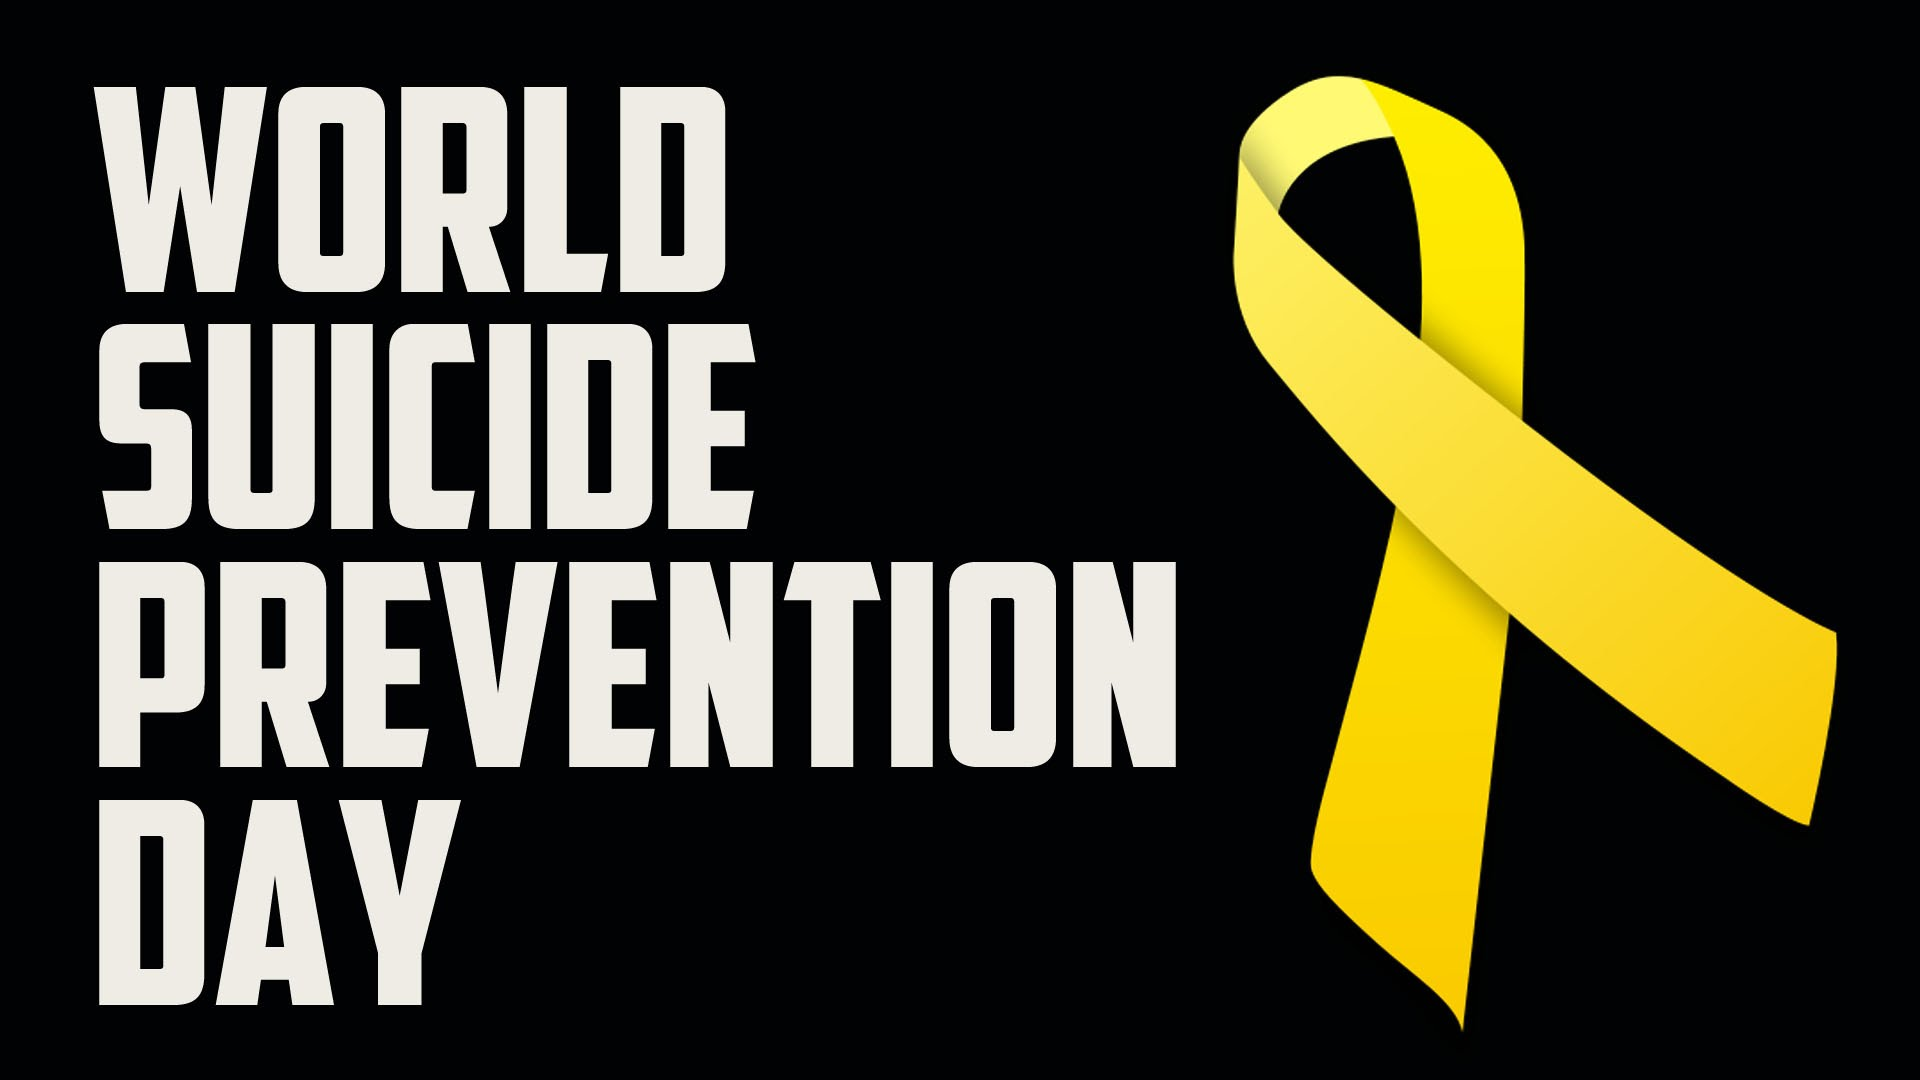 Events taking place in GP to mark World Suicide Prevention Day